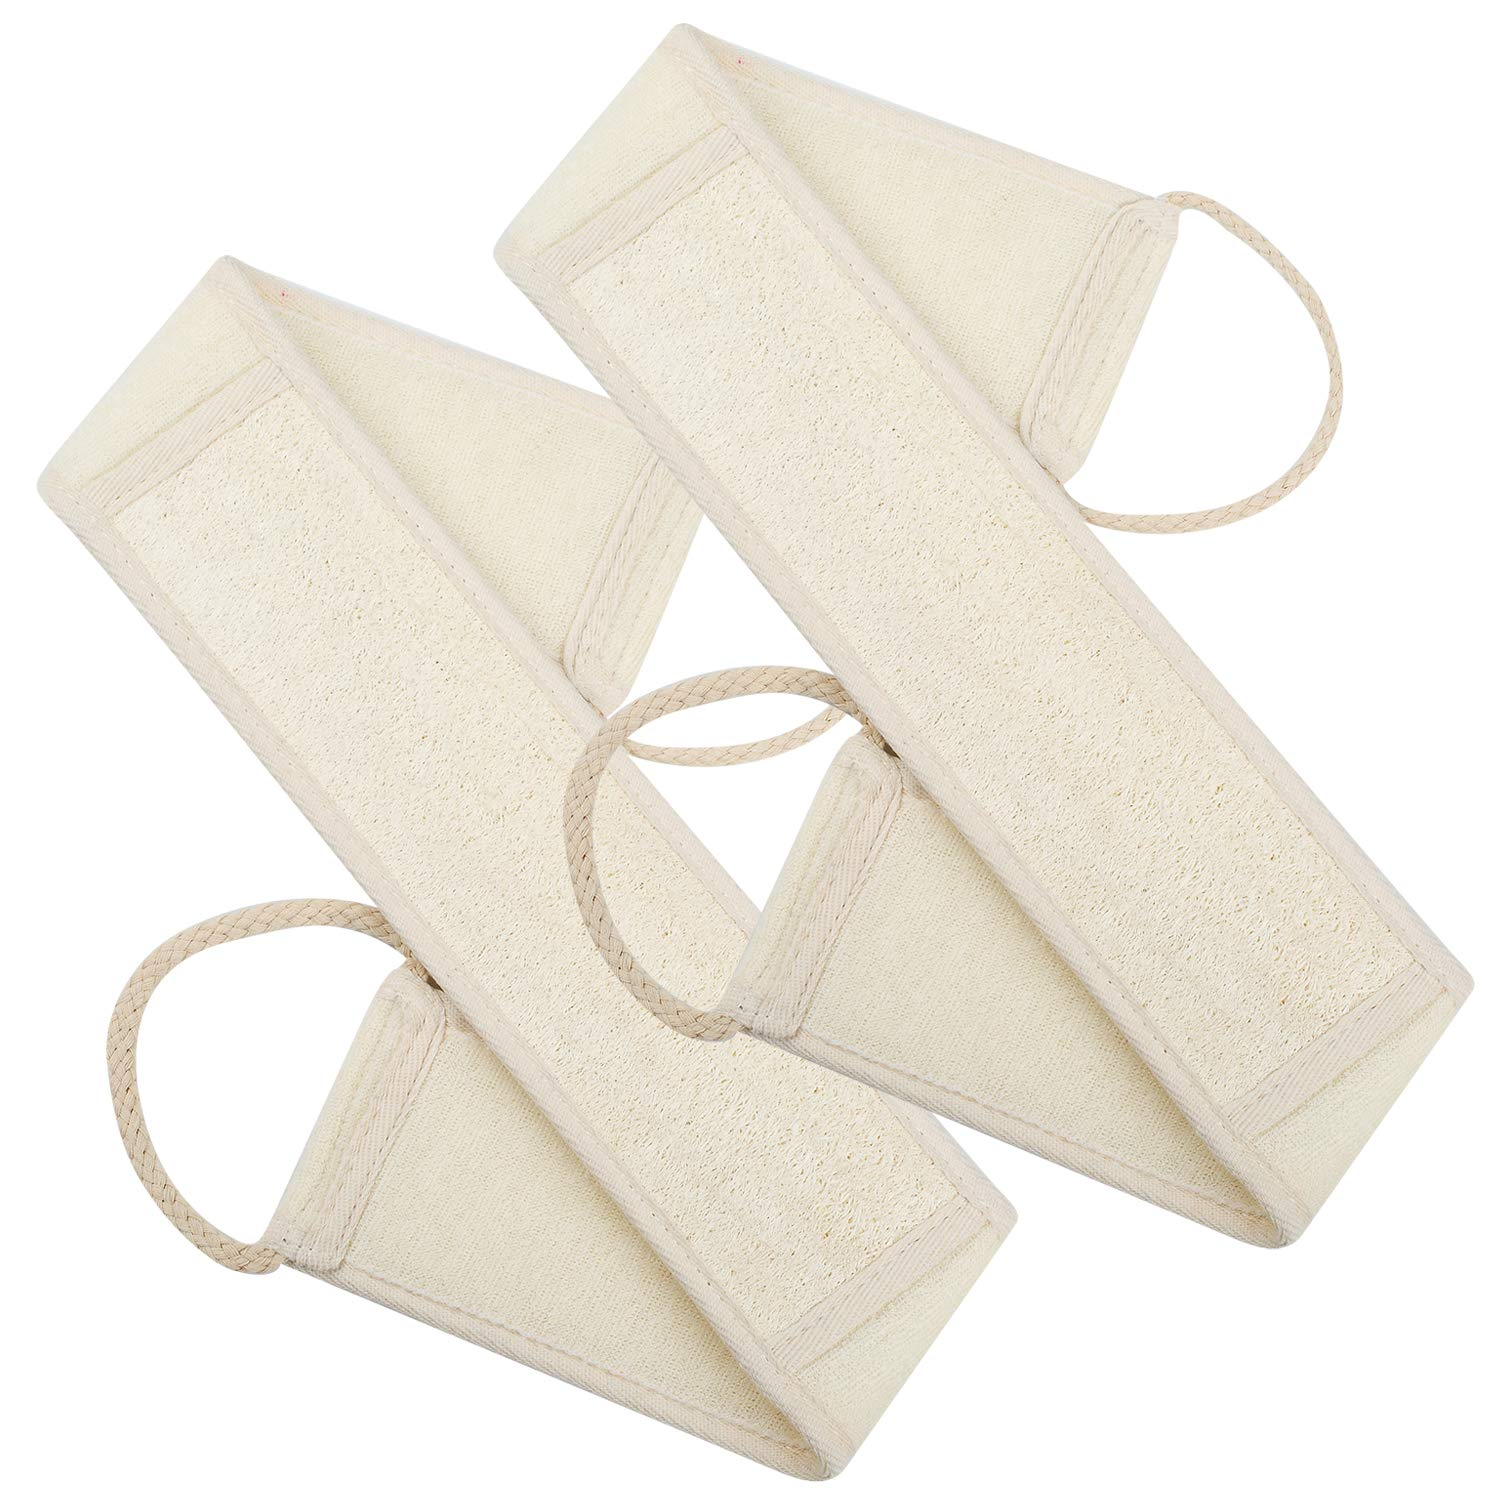 100% Natural Loofah Exfoliating Body Washcloths Sponge Scrubber for Skin Care in Bath, Spa or Shower Pack of 3 Lifaith 5848058